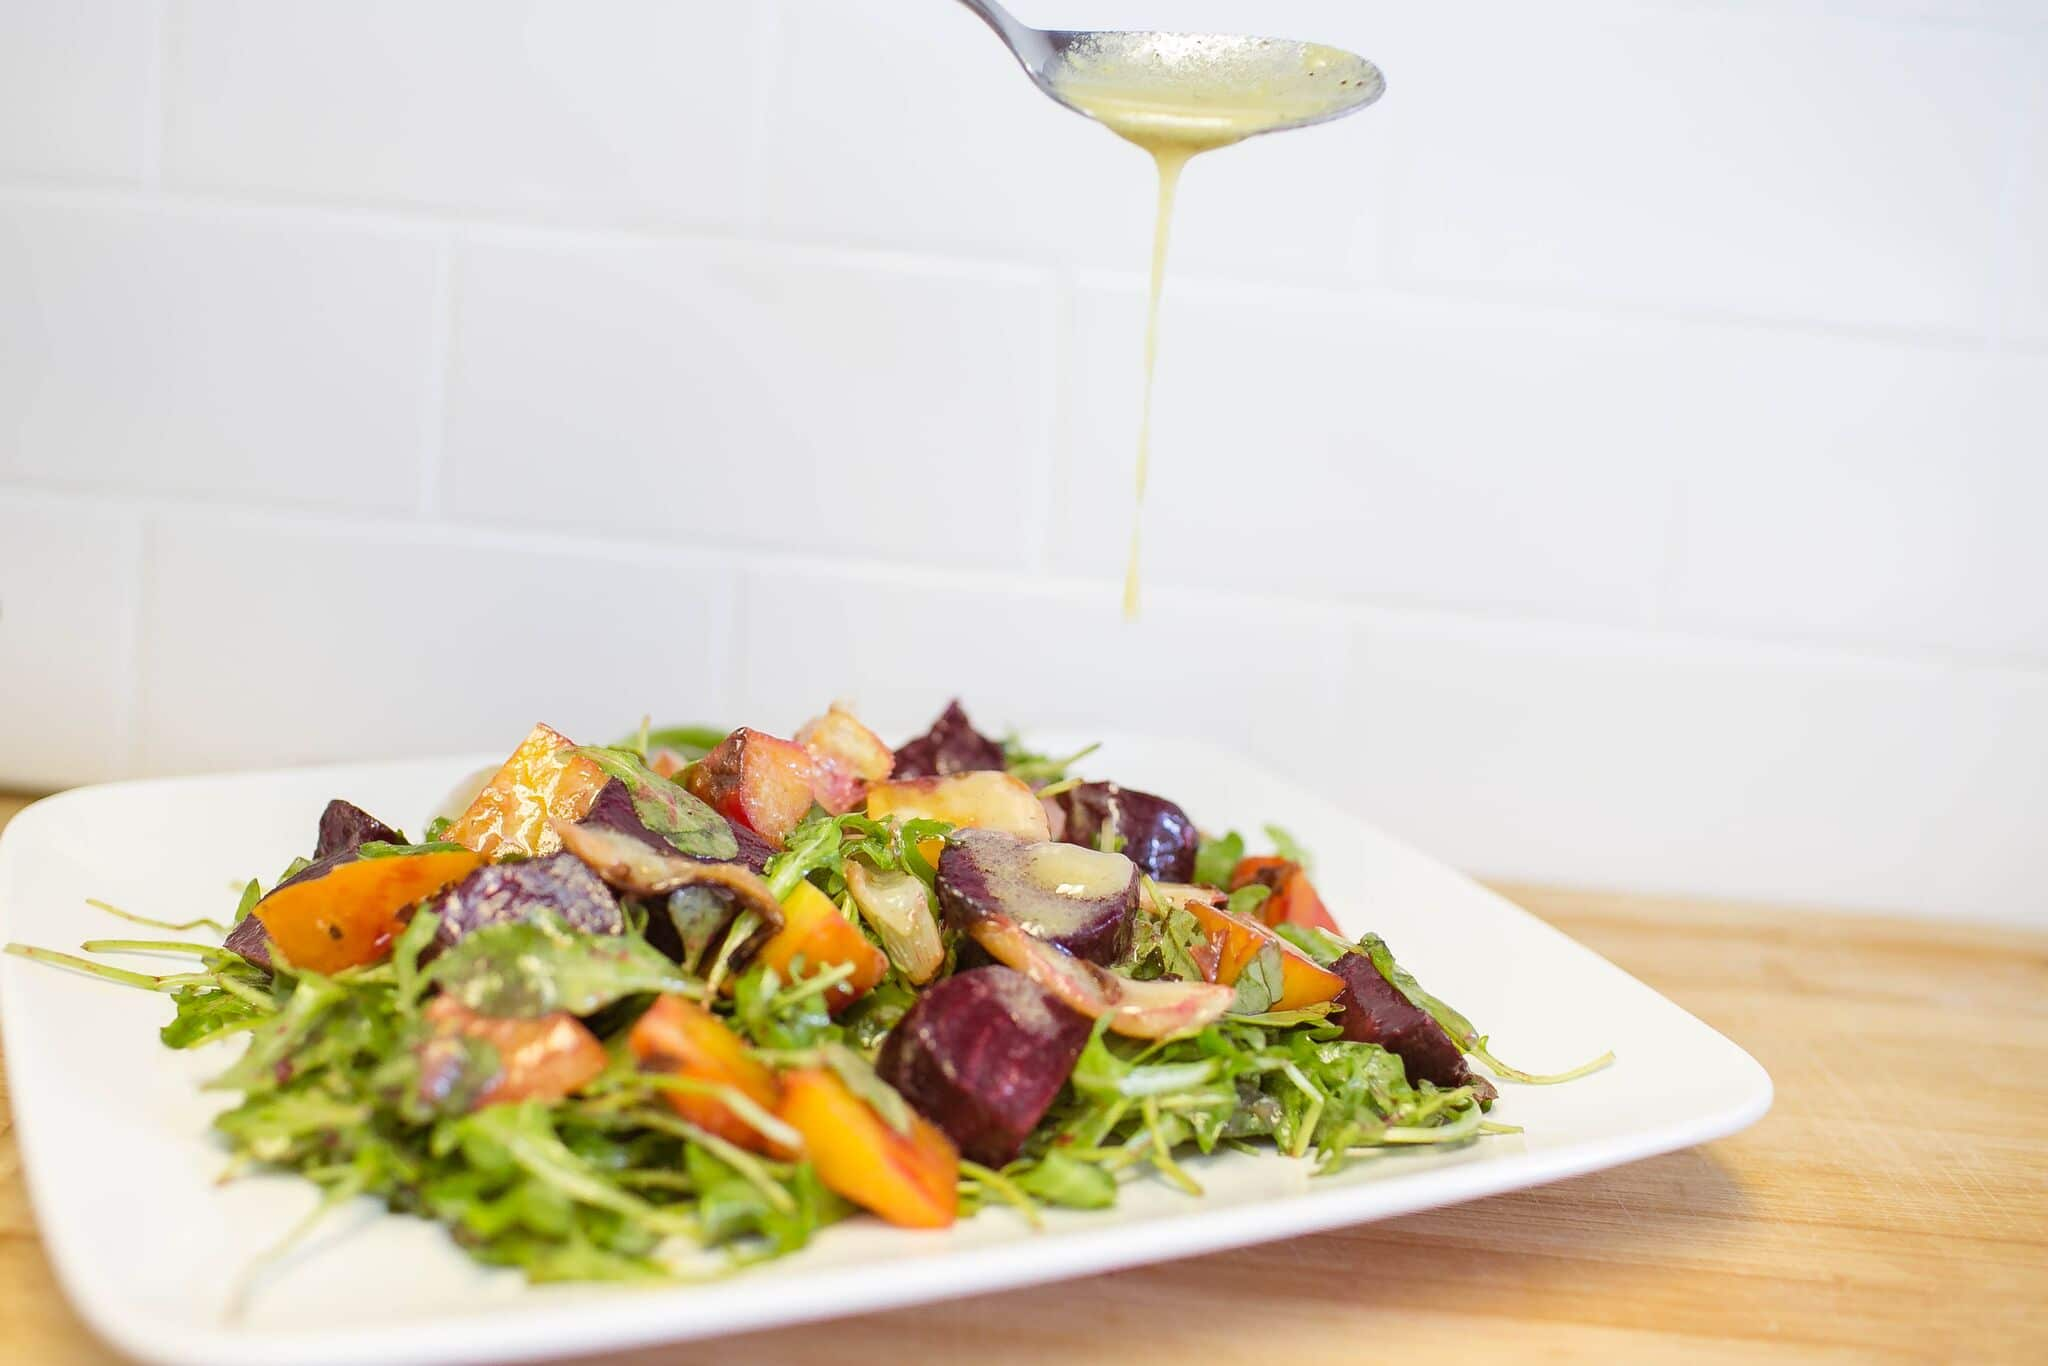 Serve roasted beets and fennel over a bed of arugula and dress with a vinaigrette